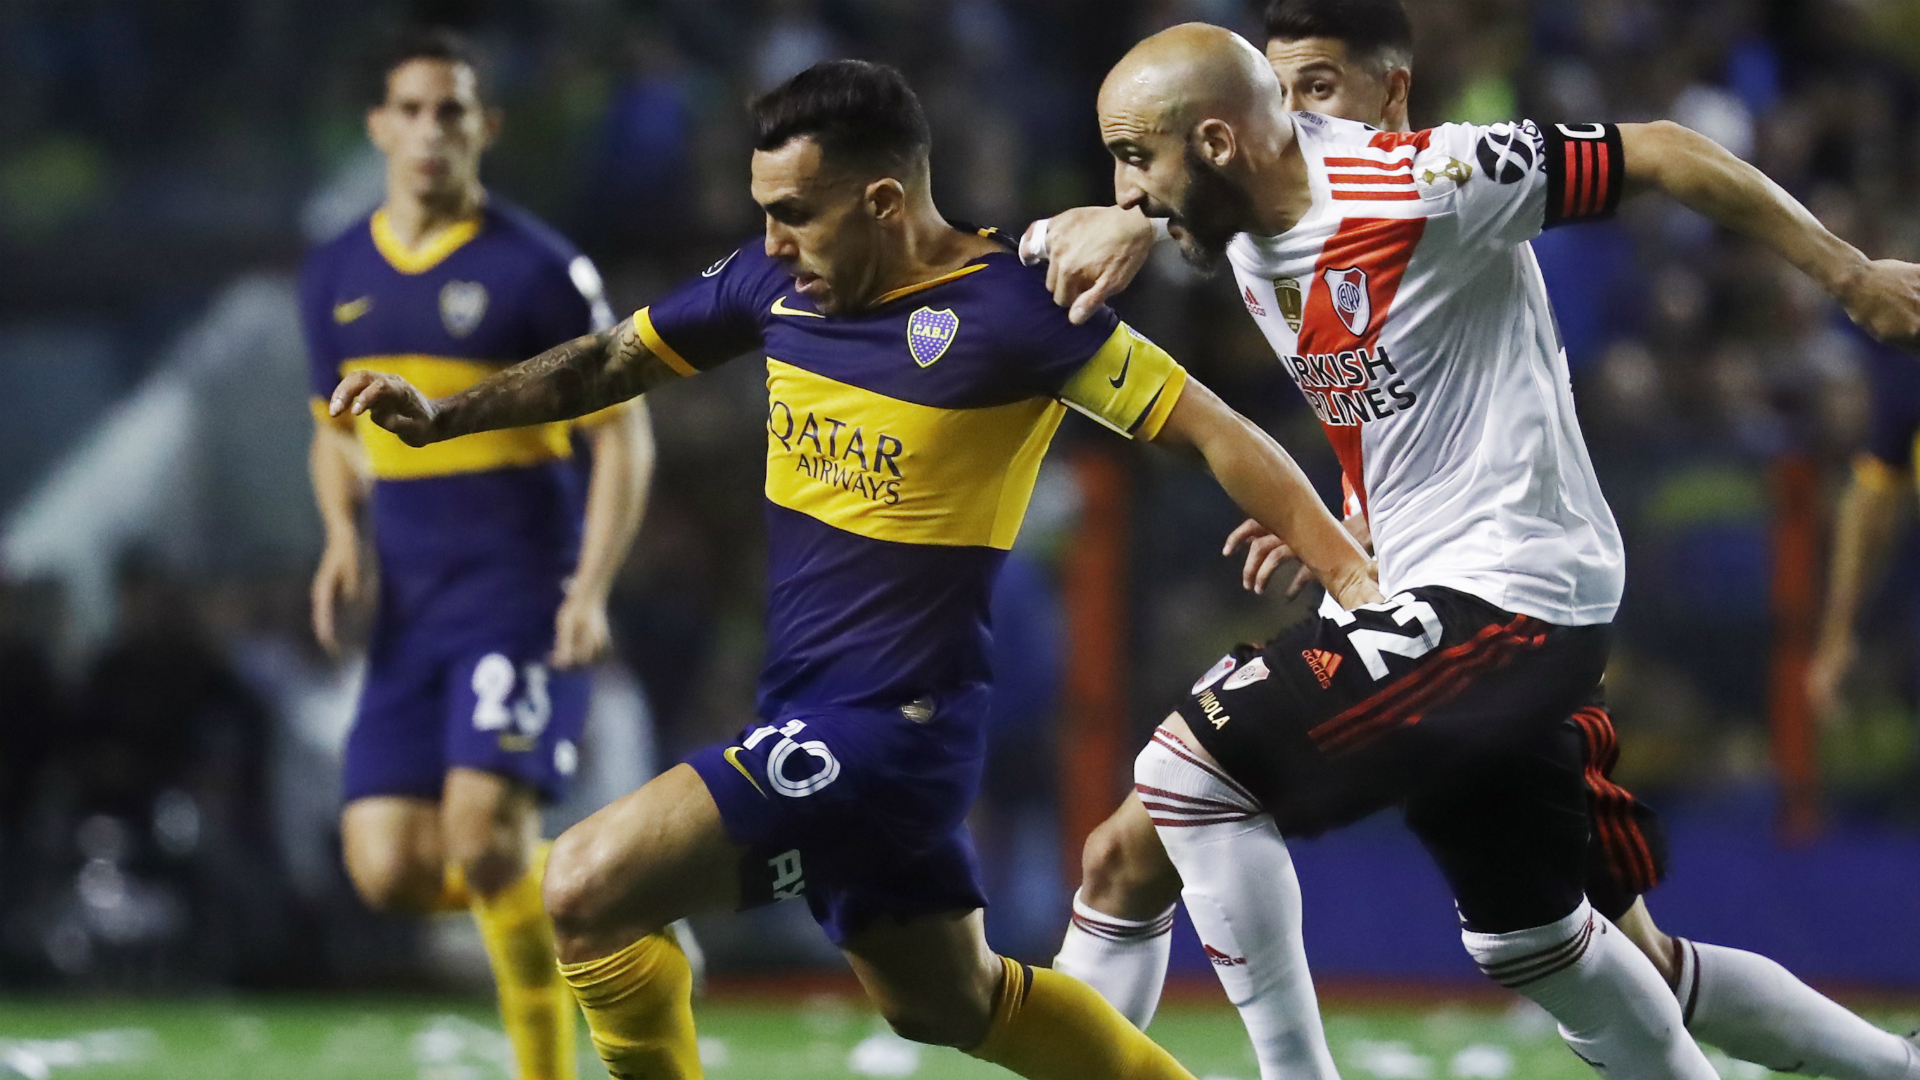 Boca Juniors and River Plate in action in the Copa Libertadores semi-final